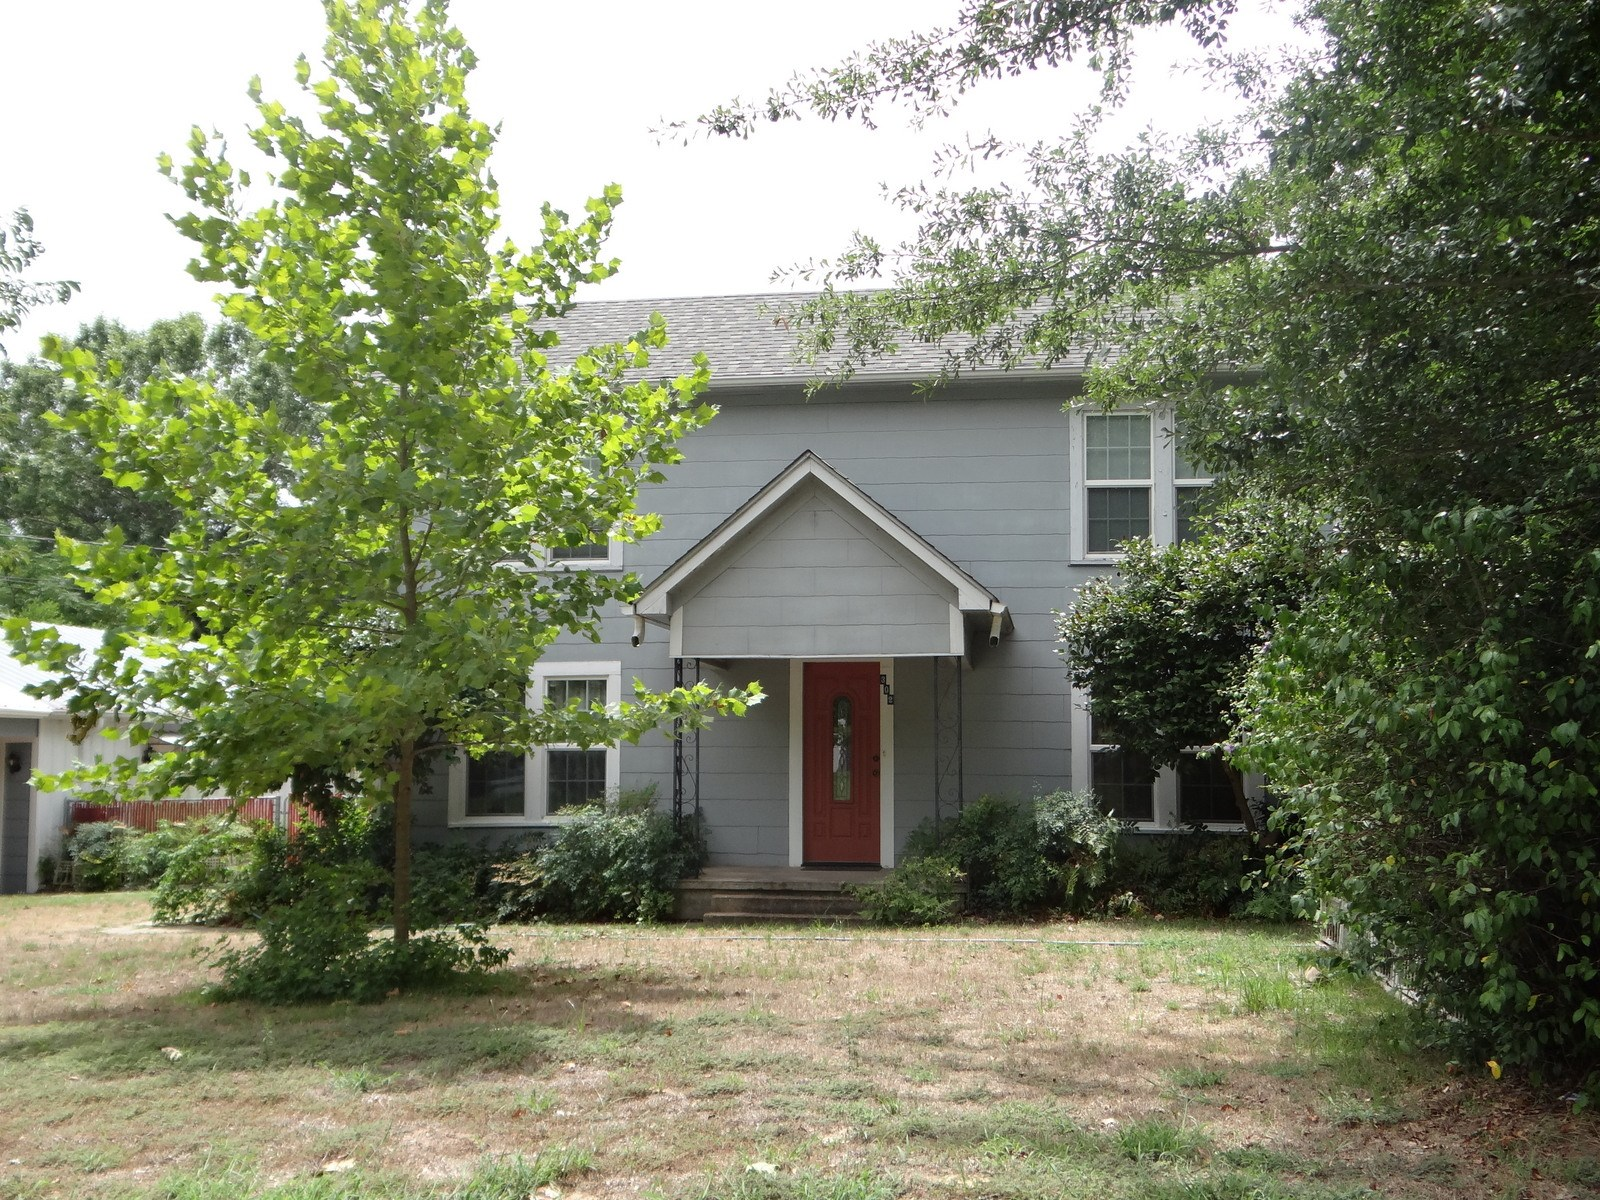 MOVE IN NOW!   3/2/4 EAST TEXAS HOME ON LARGE LOT IN TOWN